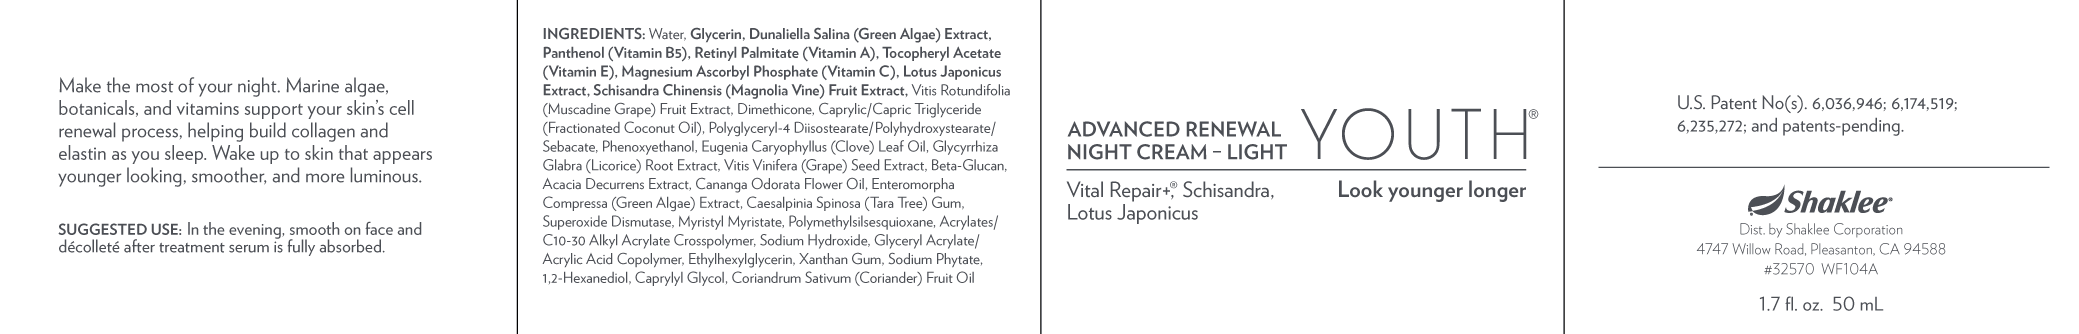 Advanced Renewal Night Cream- Light